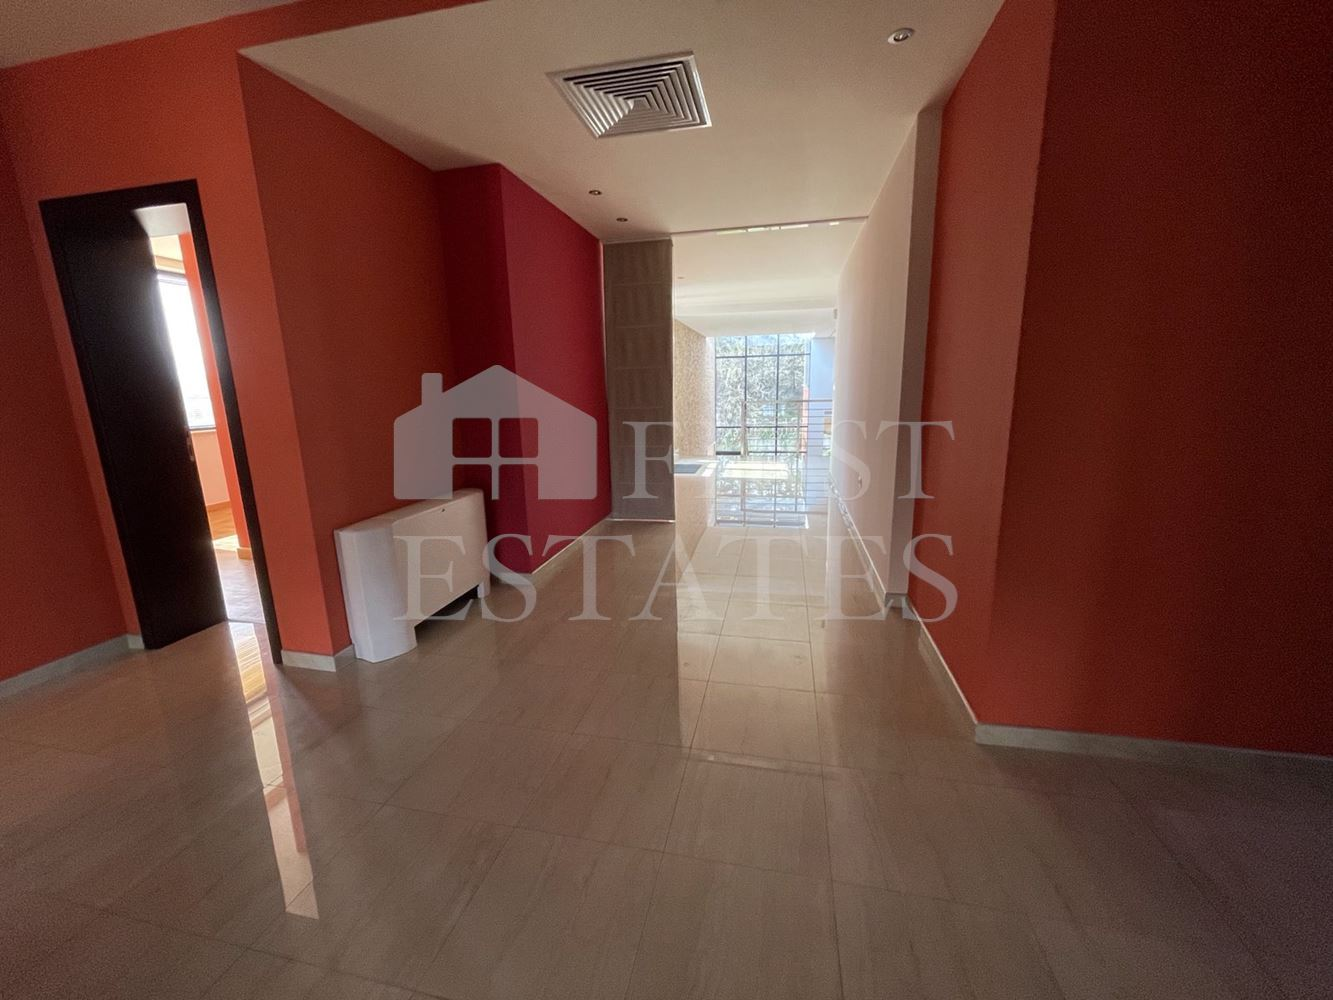 5 + bedroom house for rent